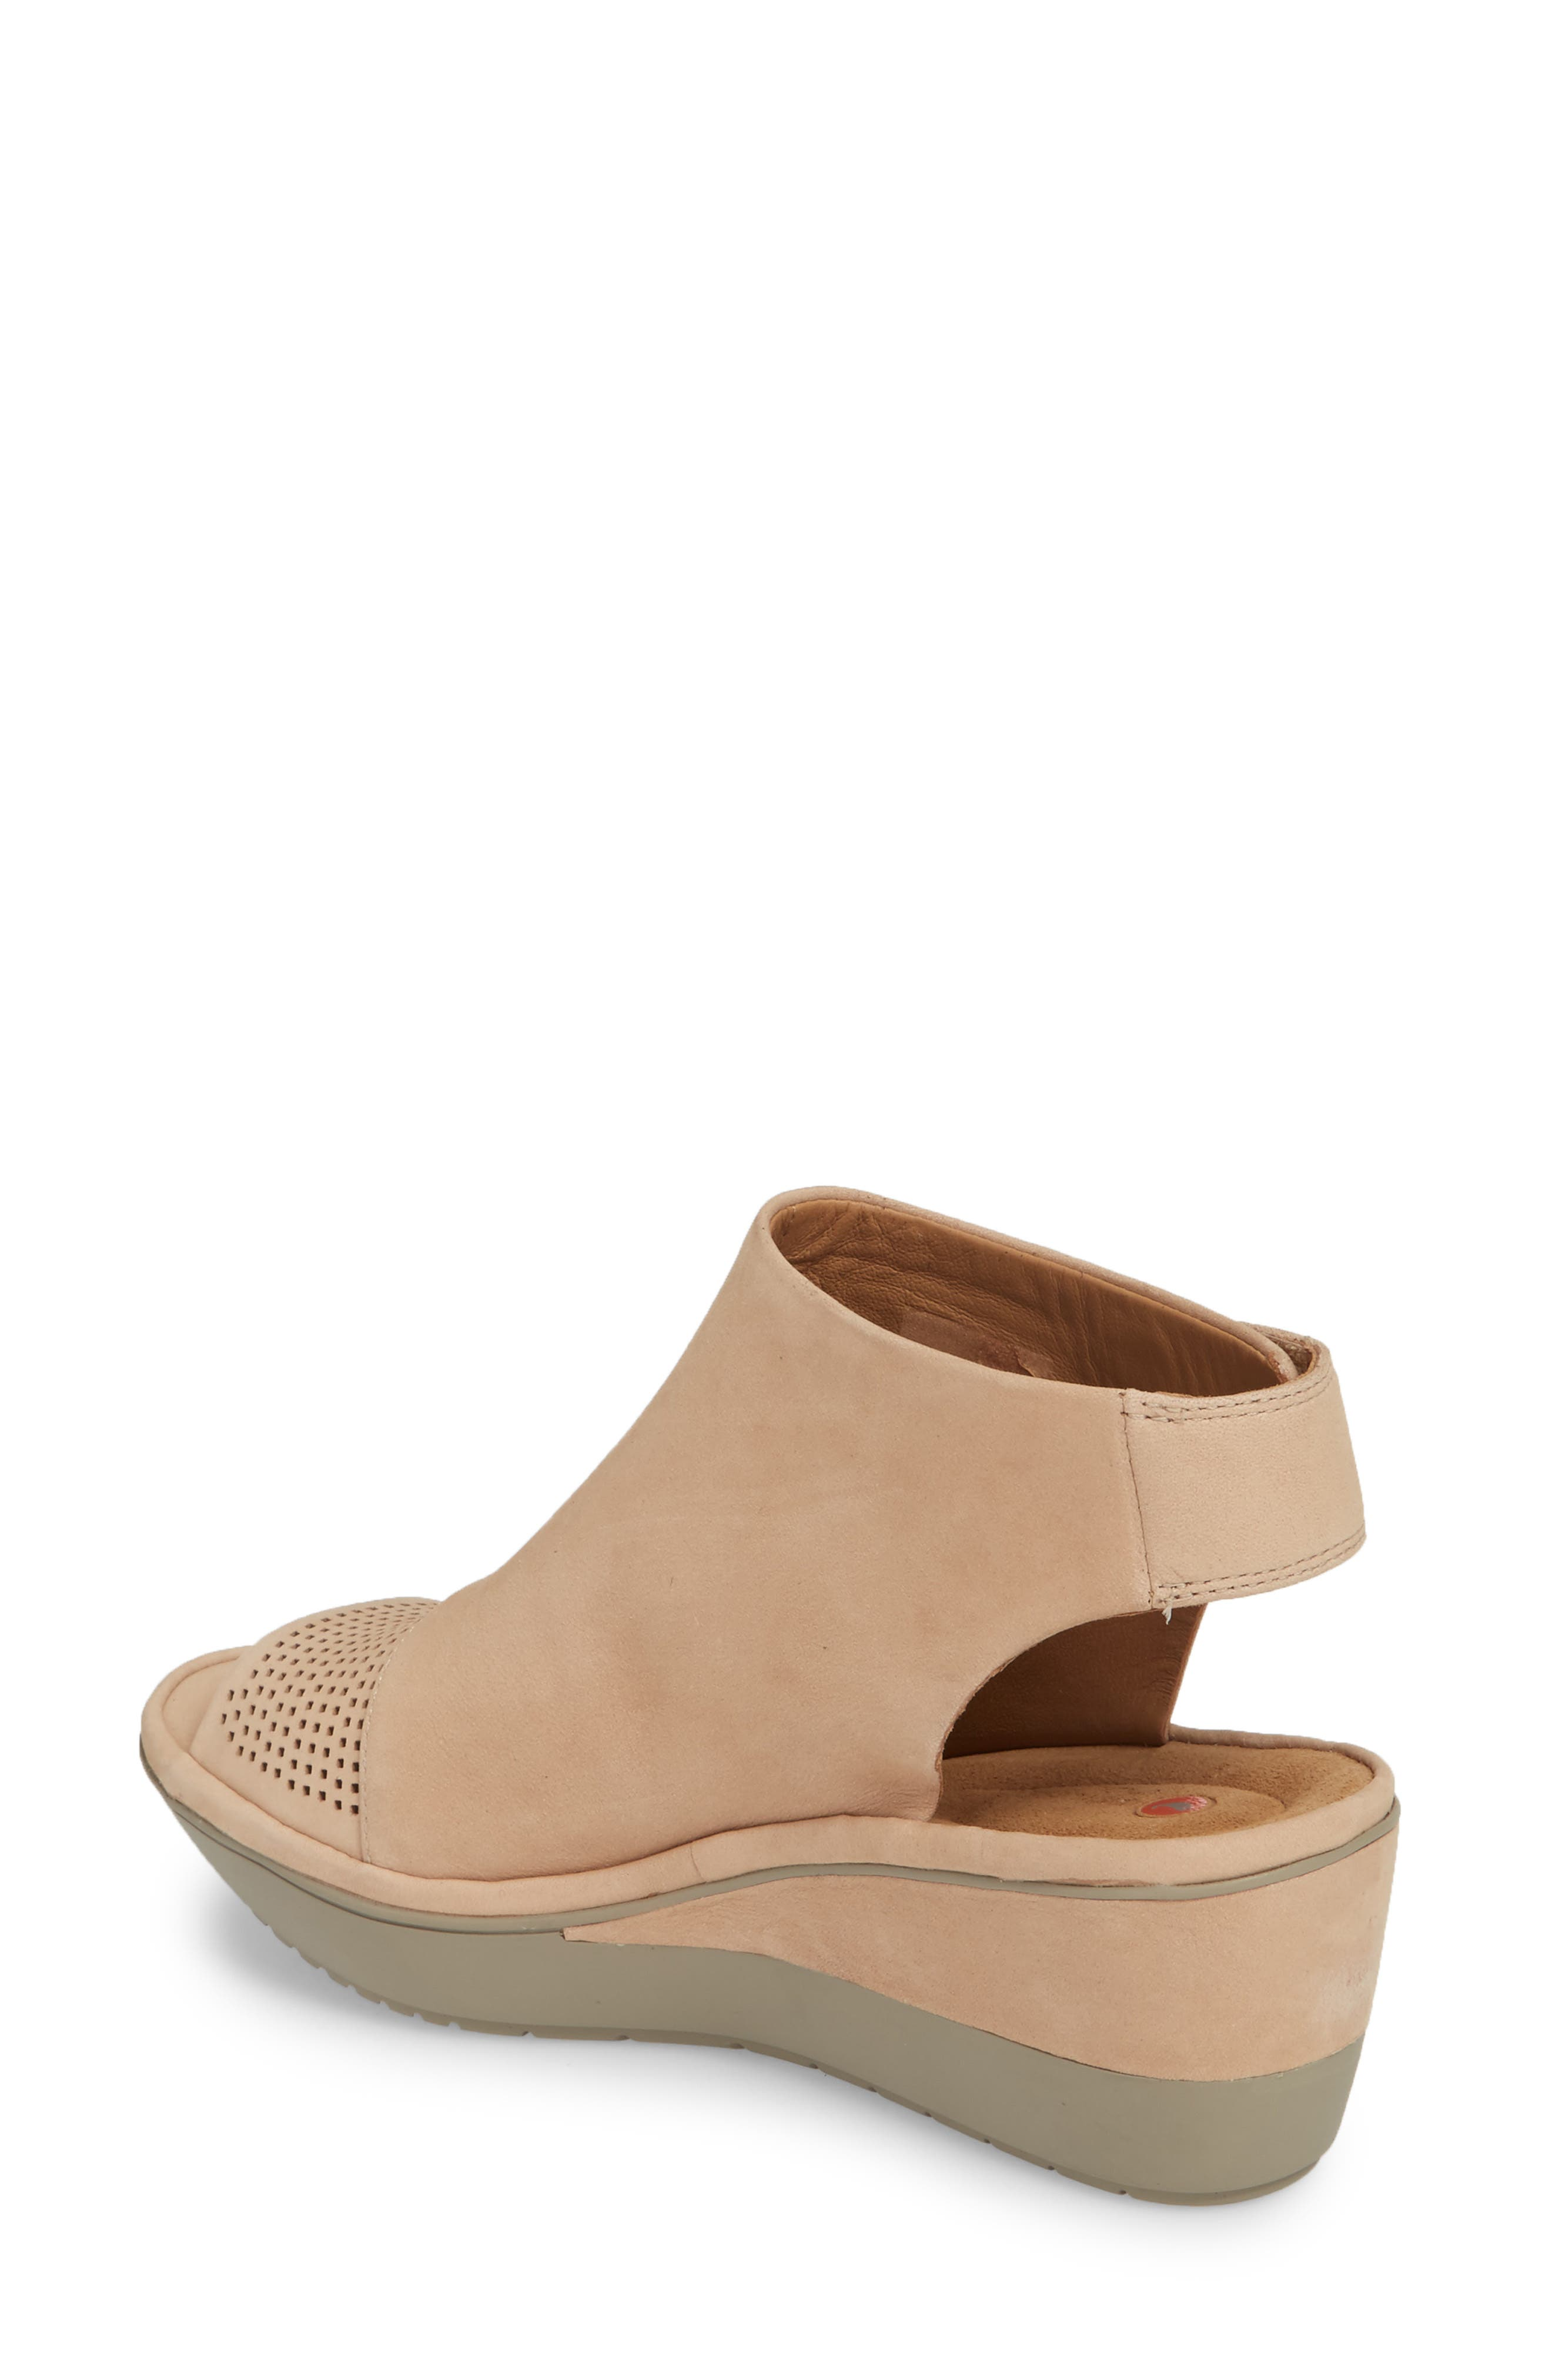 Wynnmere Abie Wedge Sandal,                             Alternate thumbnail 2, color,                             273